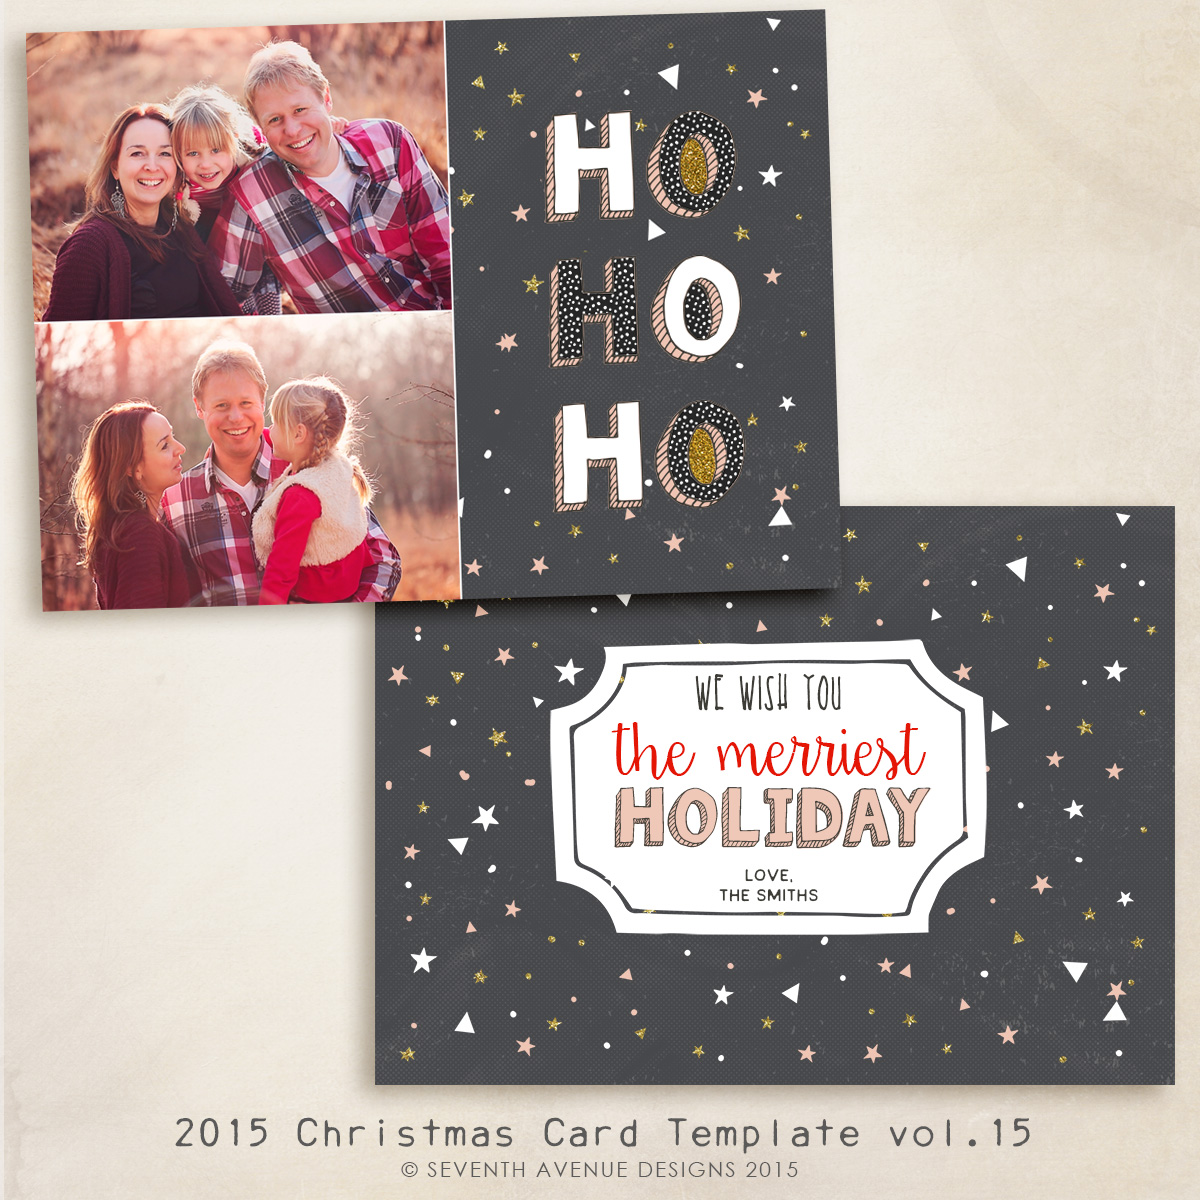 2015 Christmas Card Templates vol.15 -- 7x5 inch card template